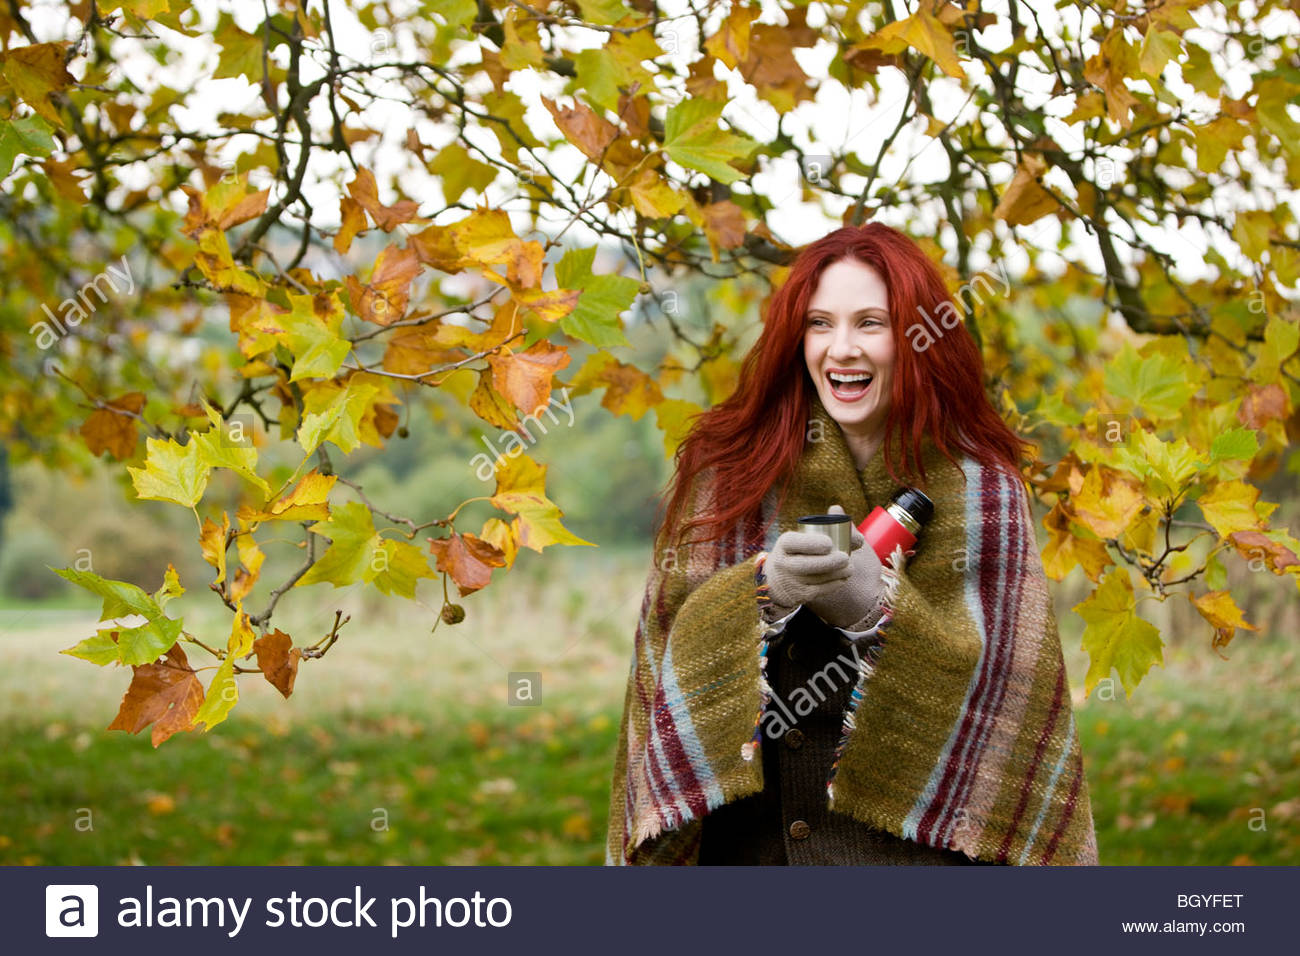 A young woman holding a flask, laughing - Stock Image